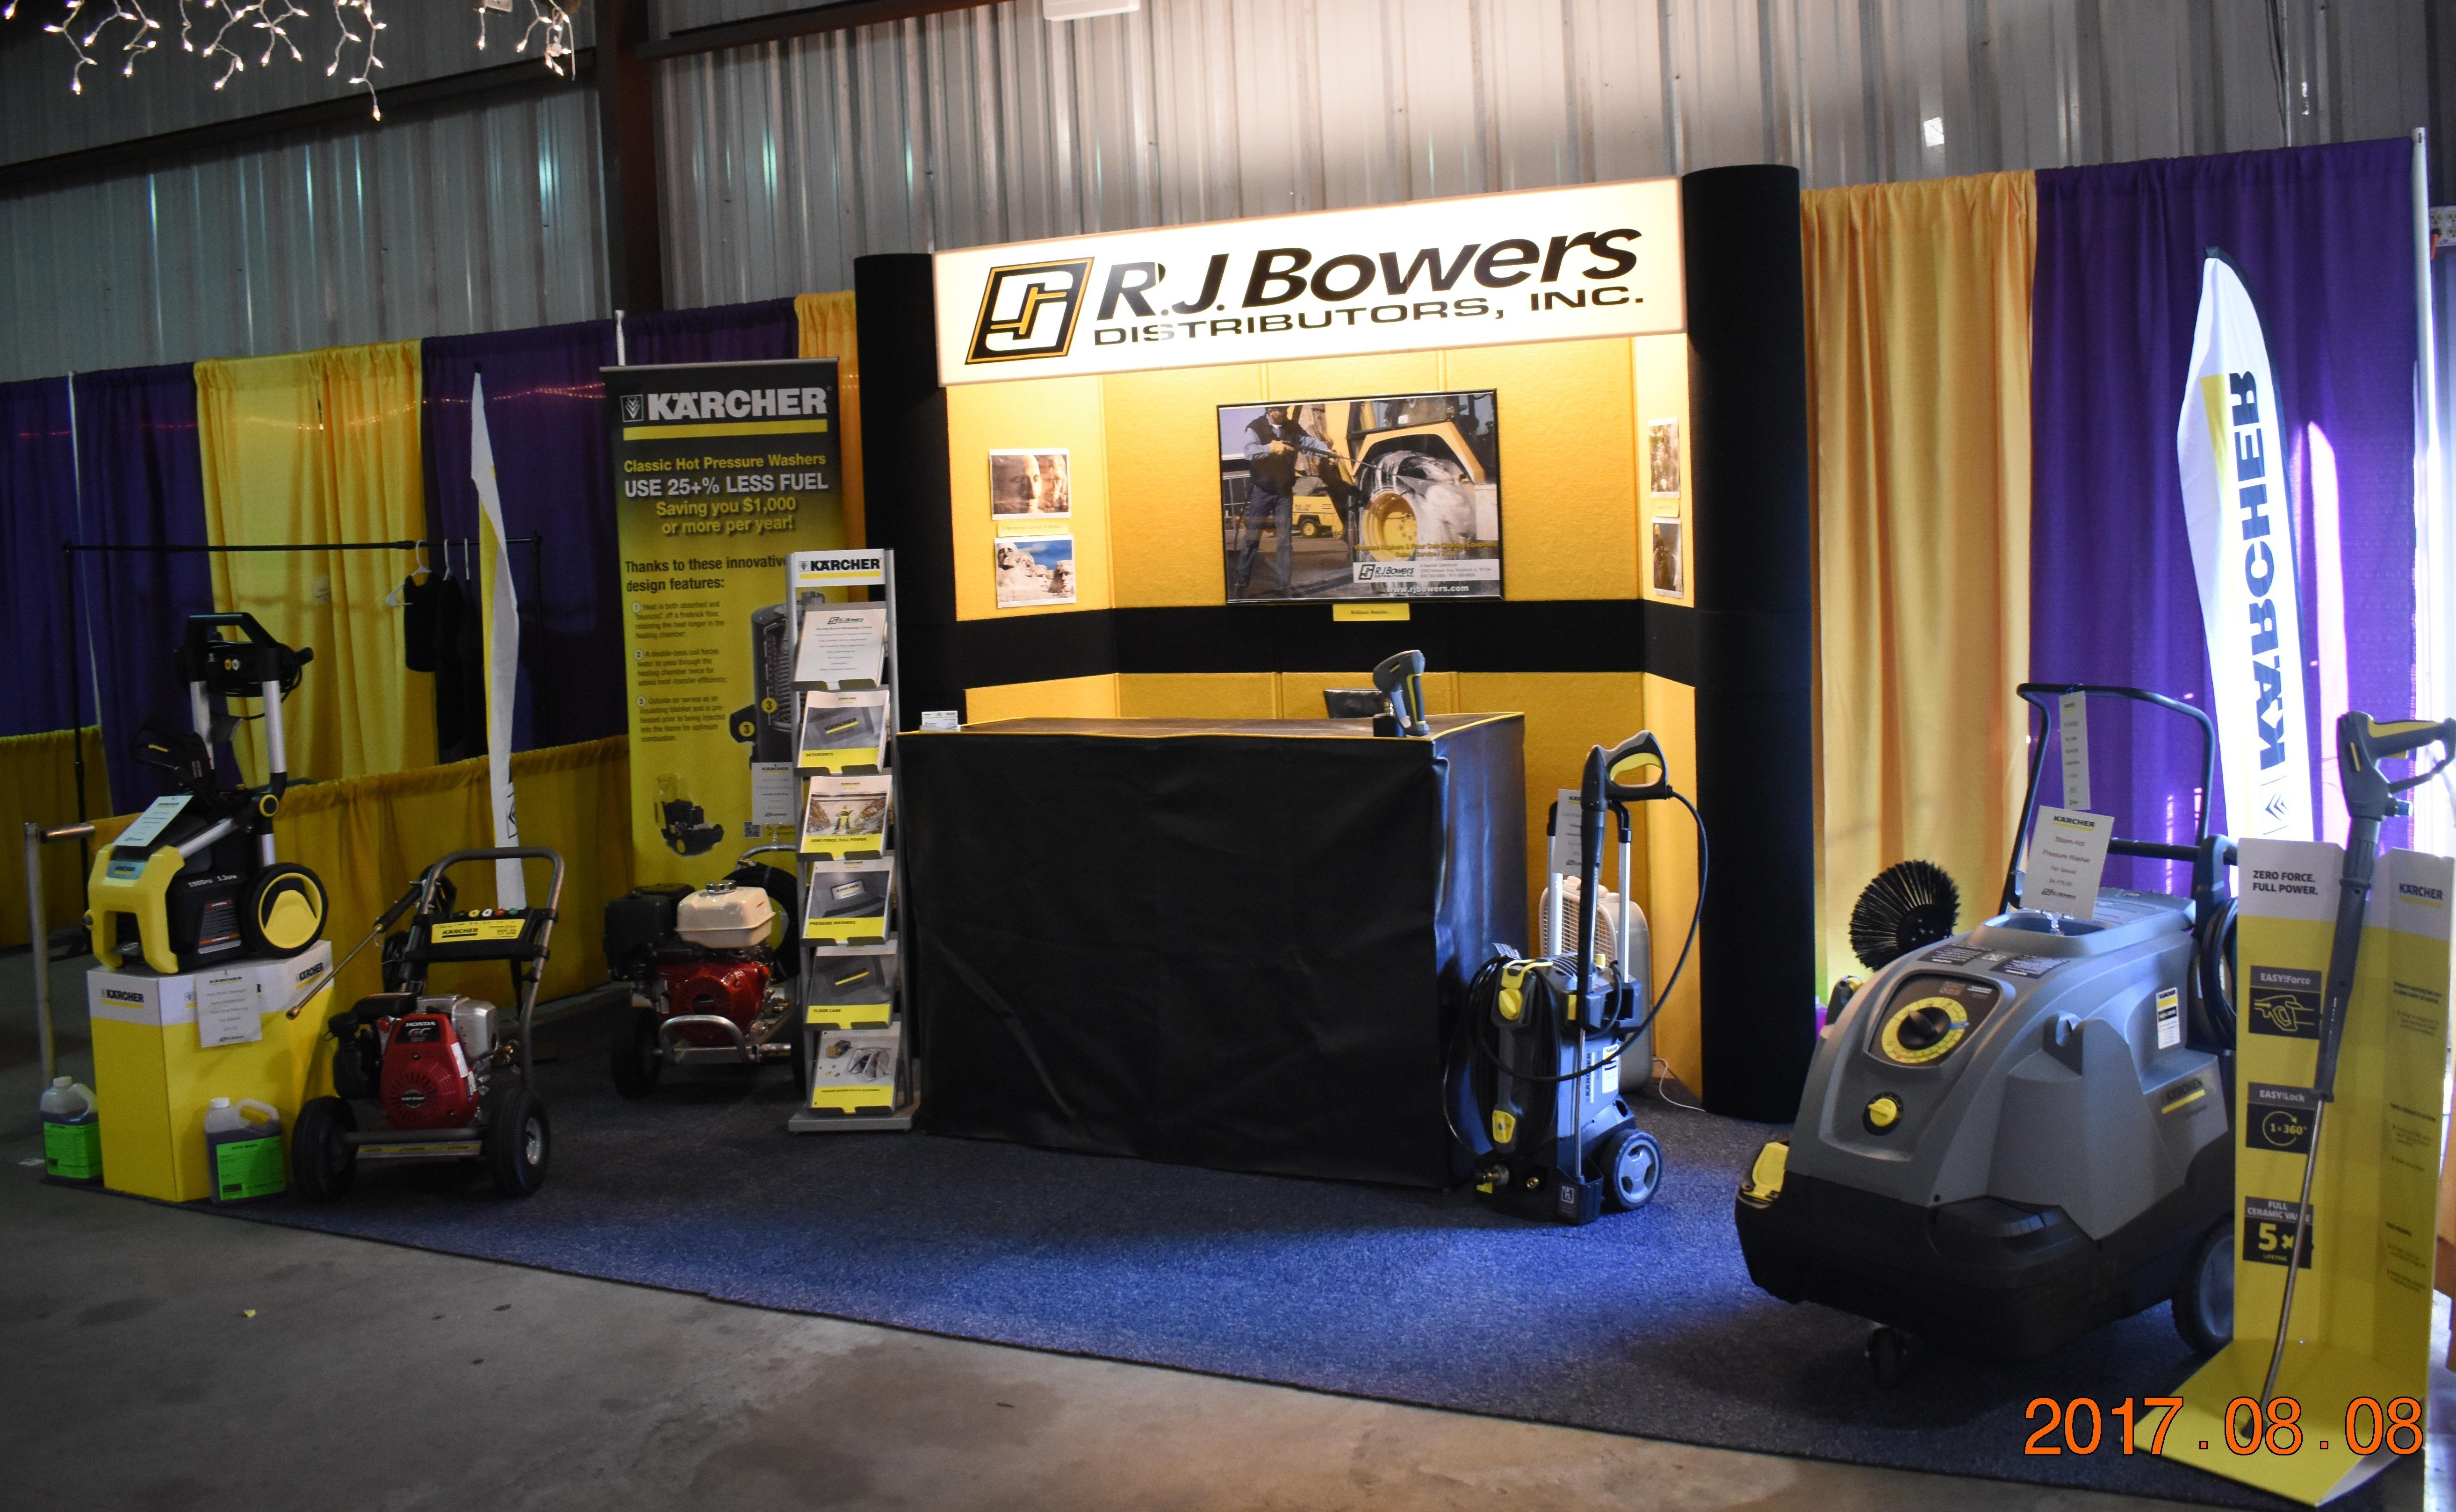 RJ Bowers - Karcher Pressure Washers Canadian Service Centers